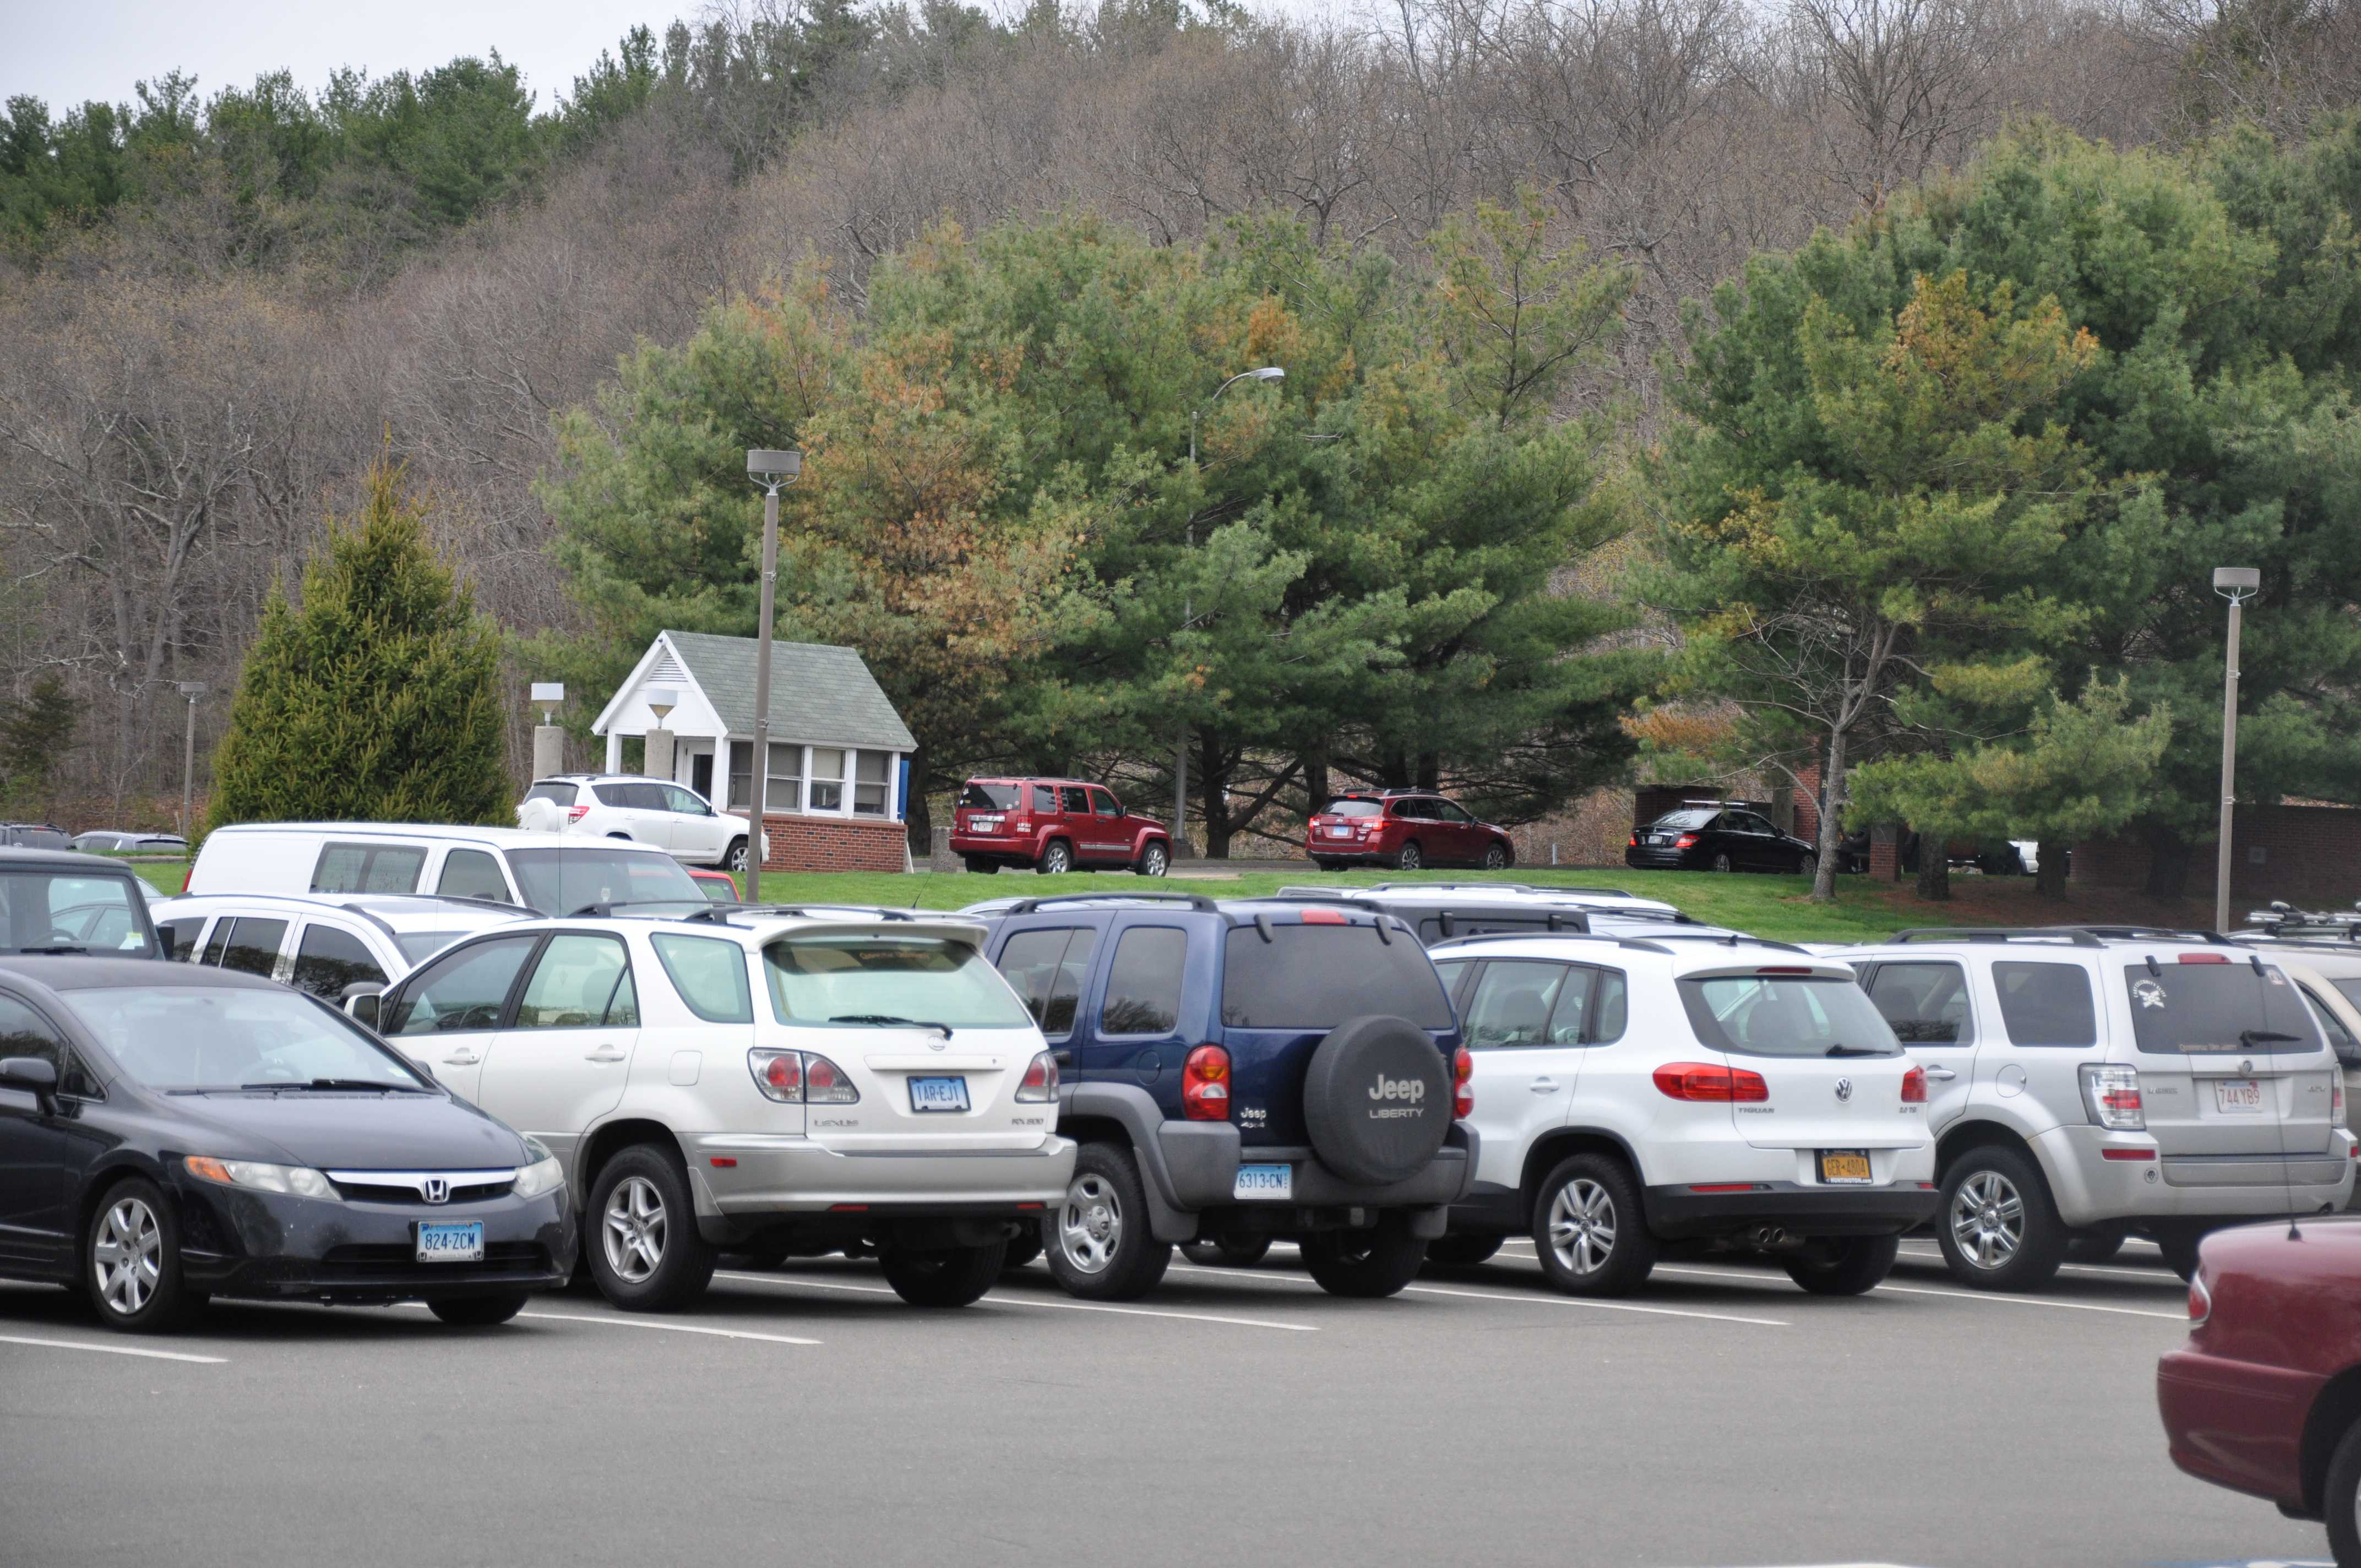 Possible parking changes announced for 2017-2018 academic school year